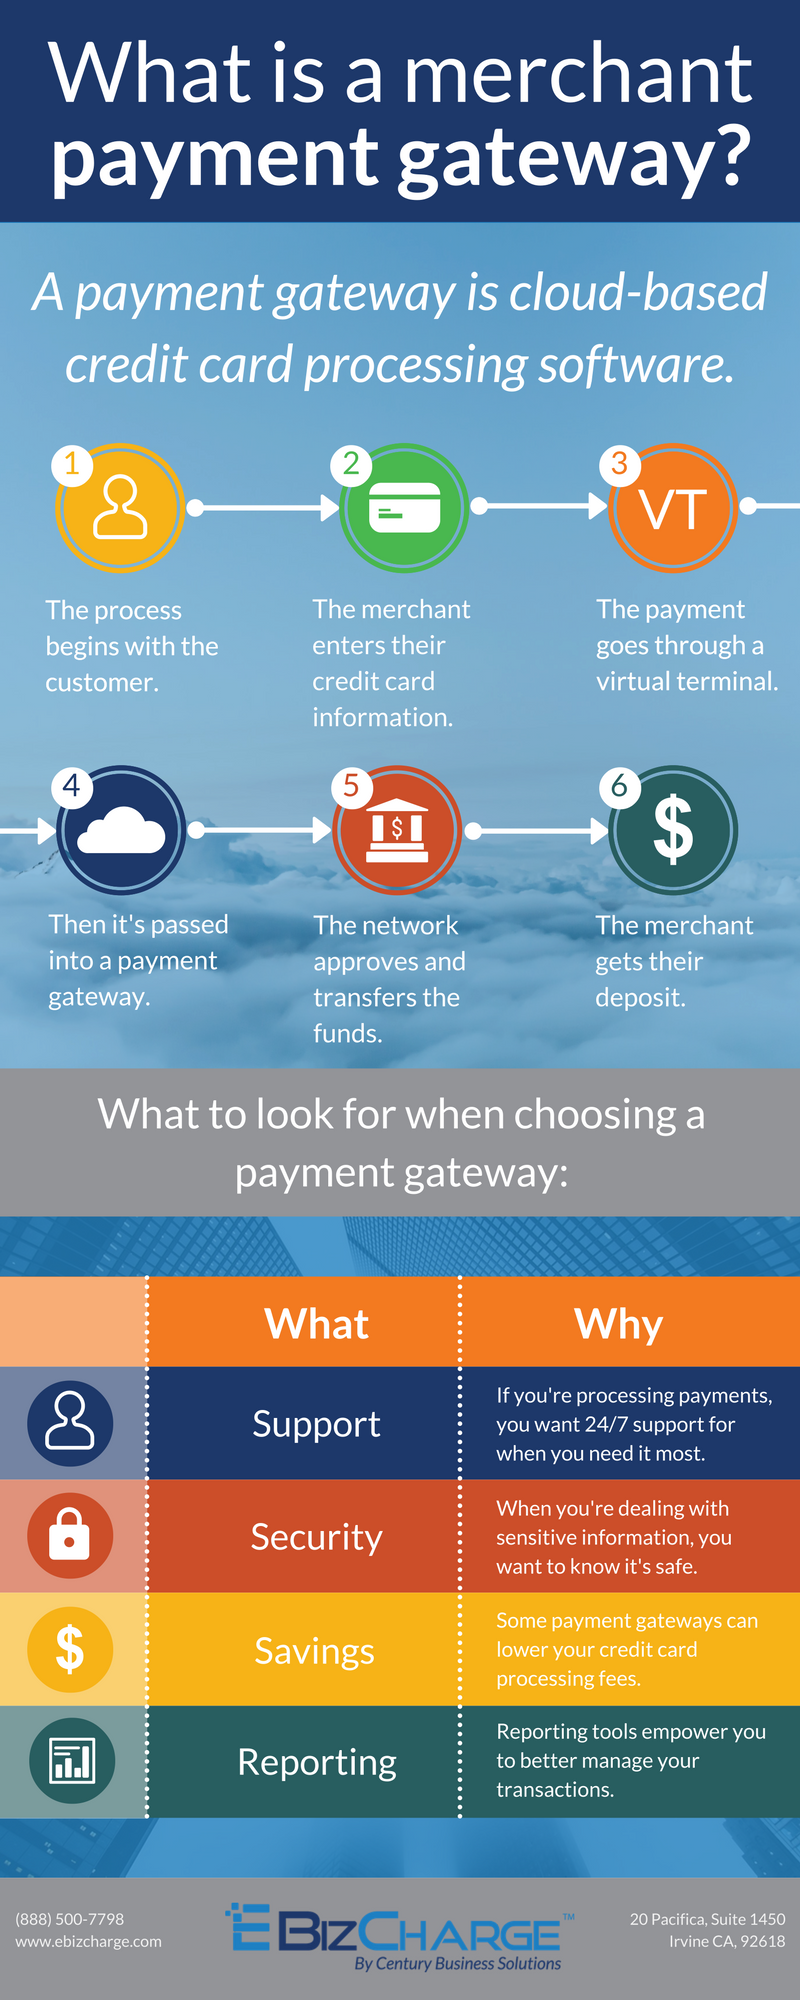 CENTURY BUSINESS SOLUTIONS: what is a merchant payment gateway -